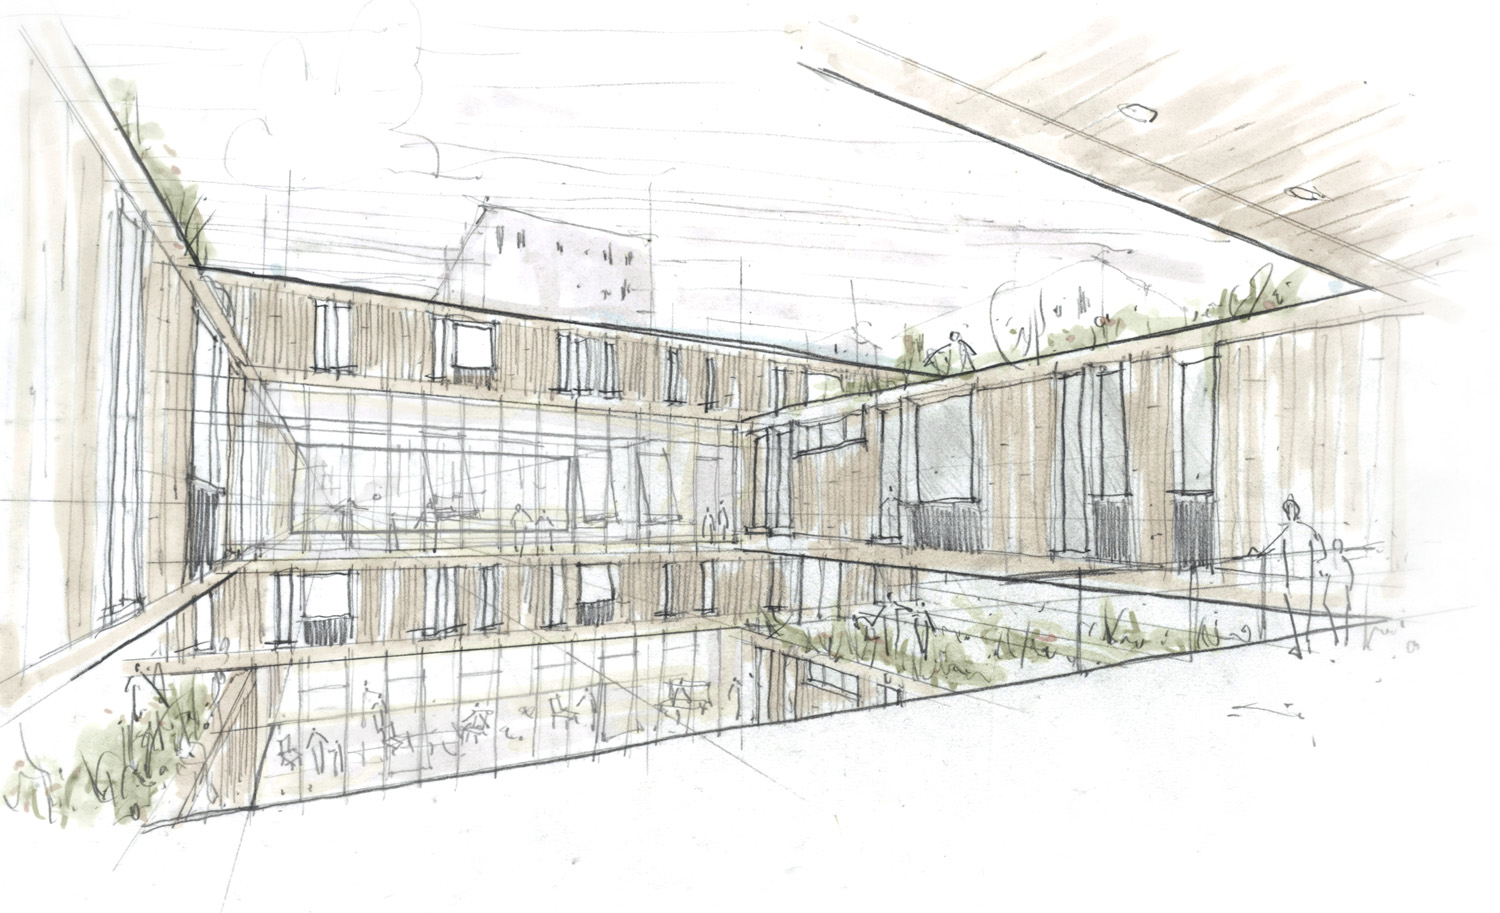 Concept Sketch 03 / Interior Courtyard and Shared Spaces